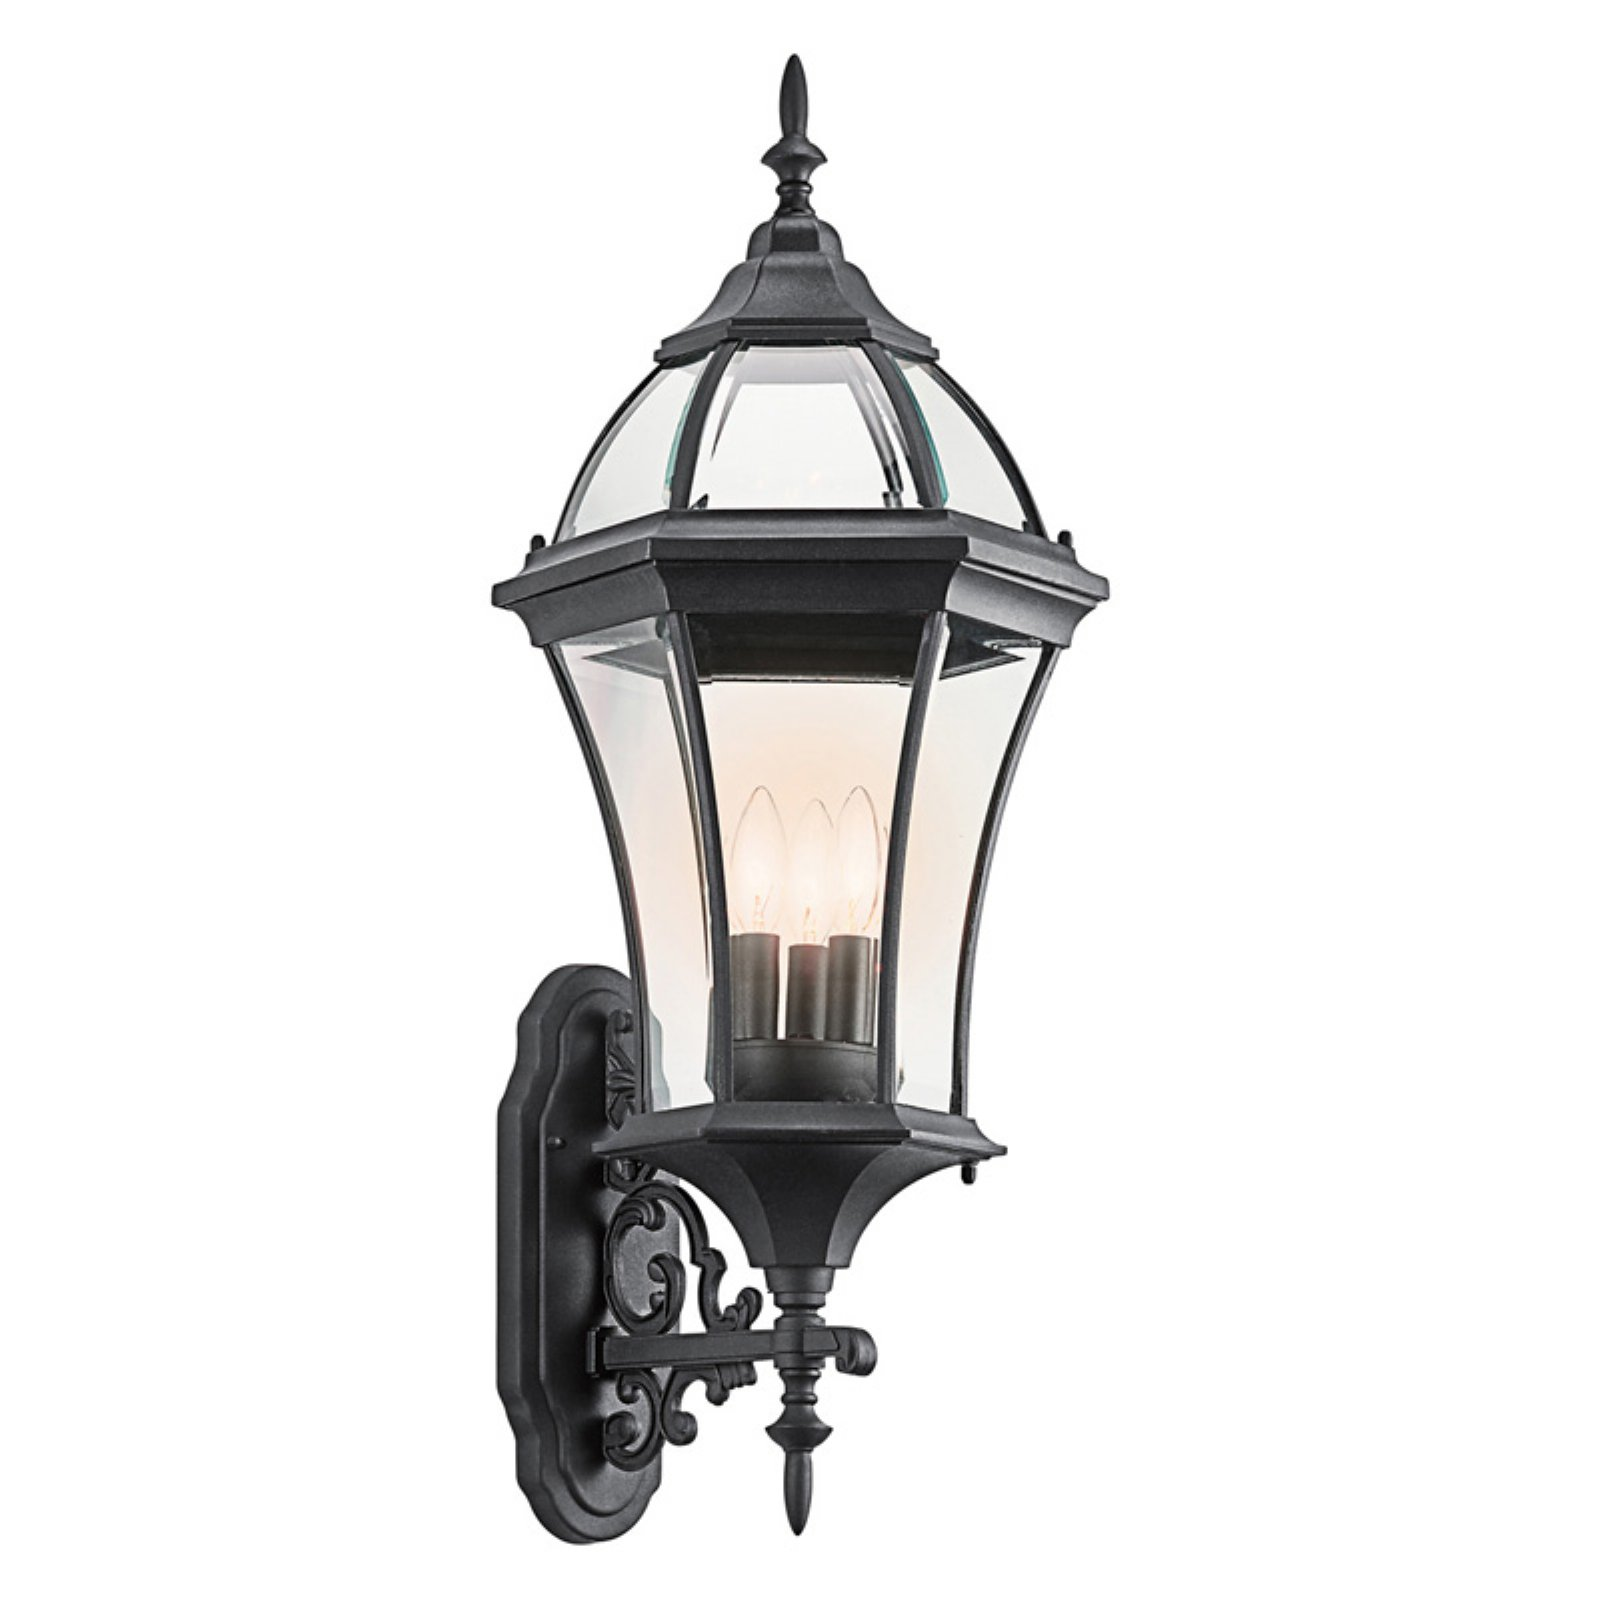 Kichler Townhouse 49185 Outdoor Wall Lantern - 12.25 in.